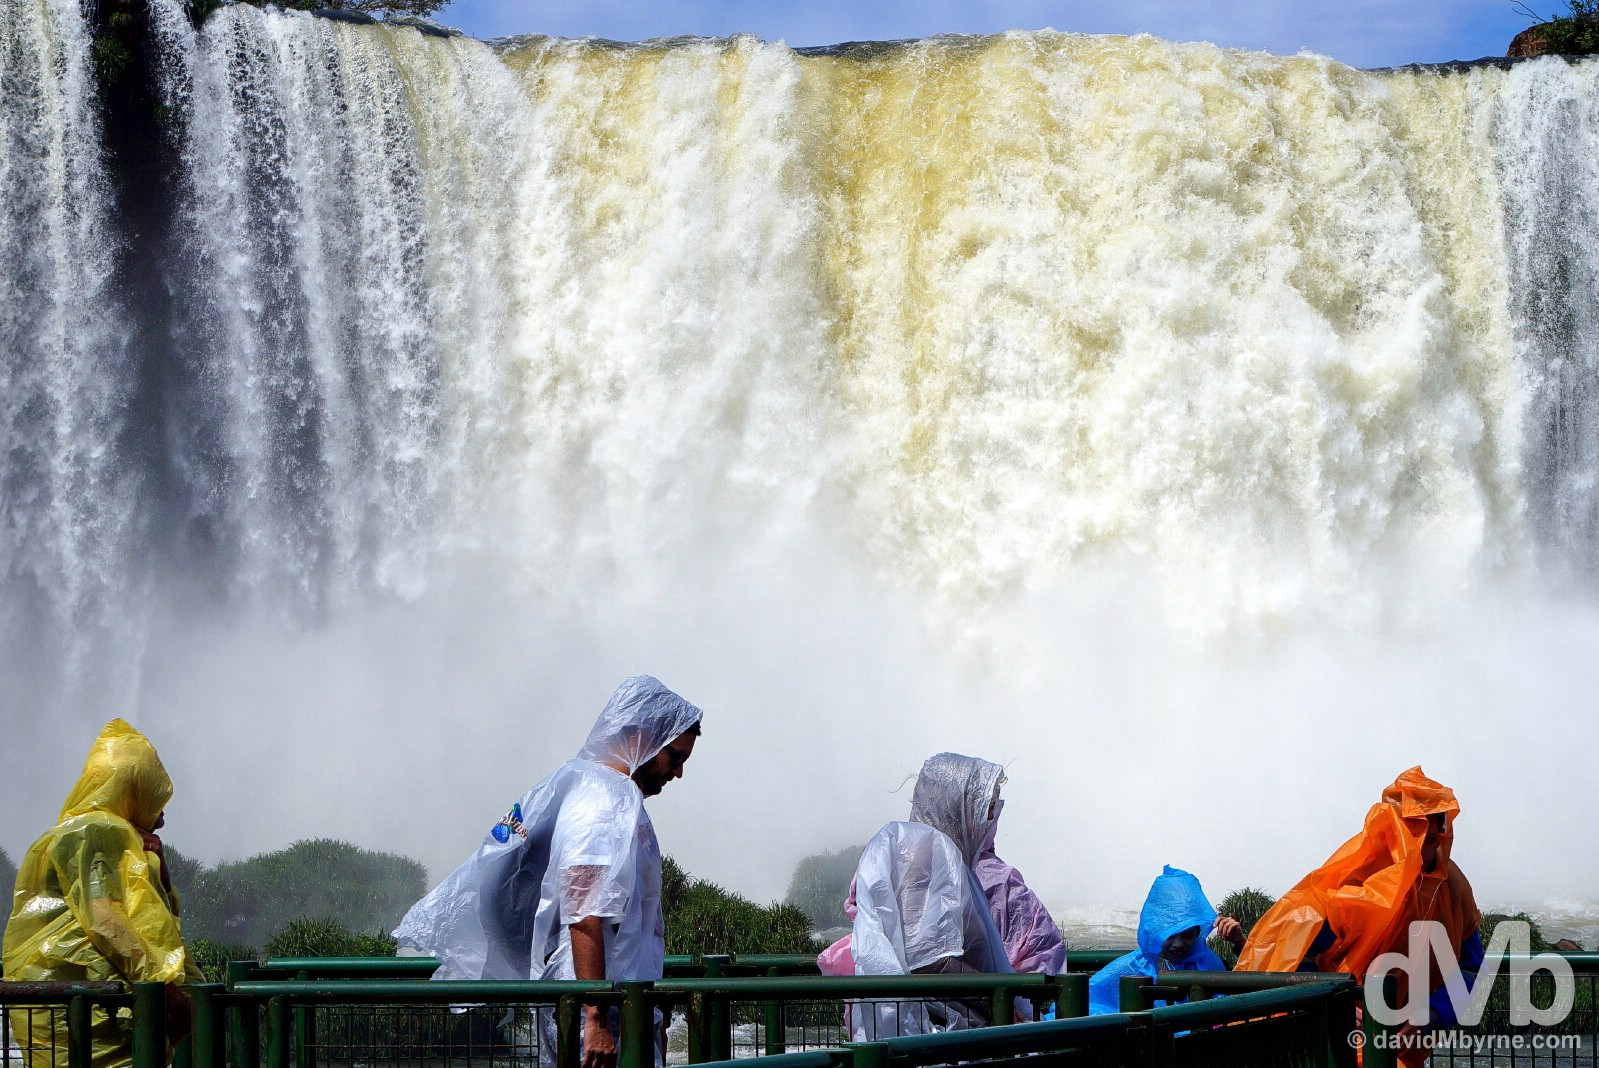 Iguazu Falls in Parque Nacional Do Iguacu, Brazil. September 12, 2015.